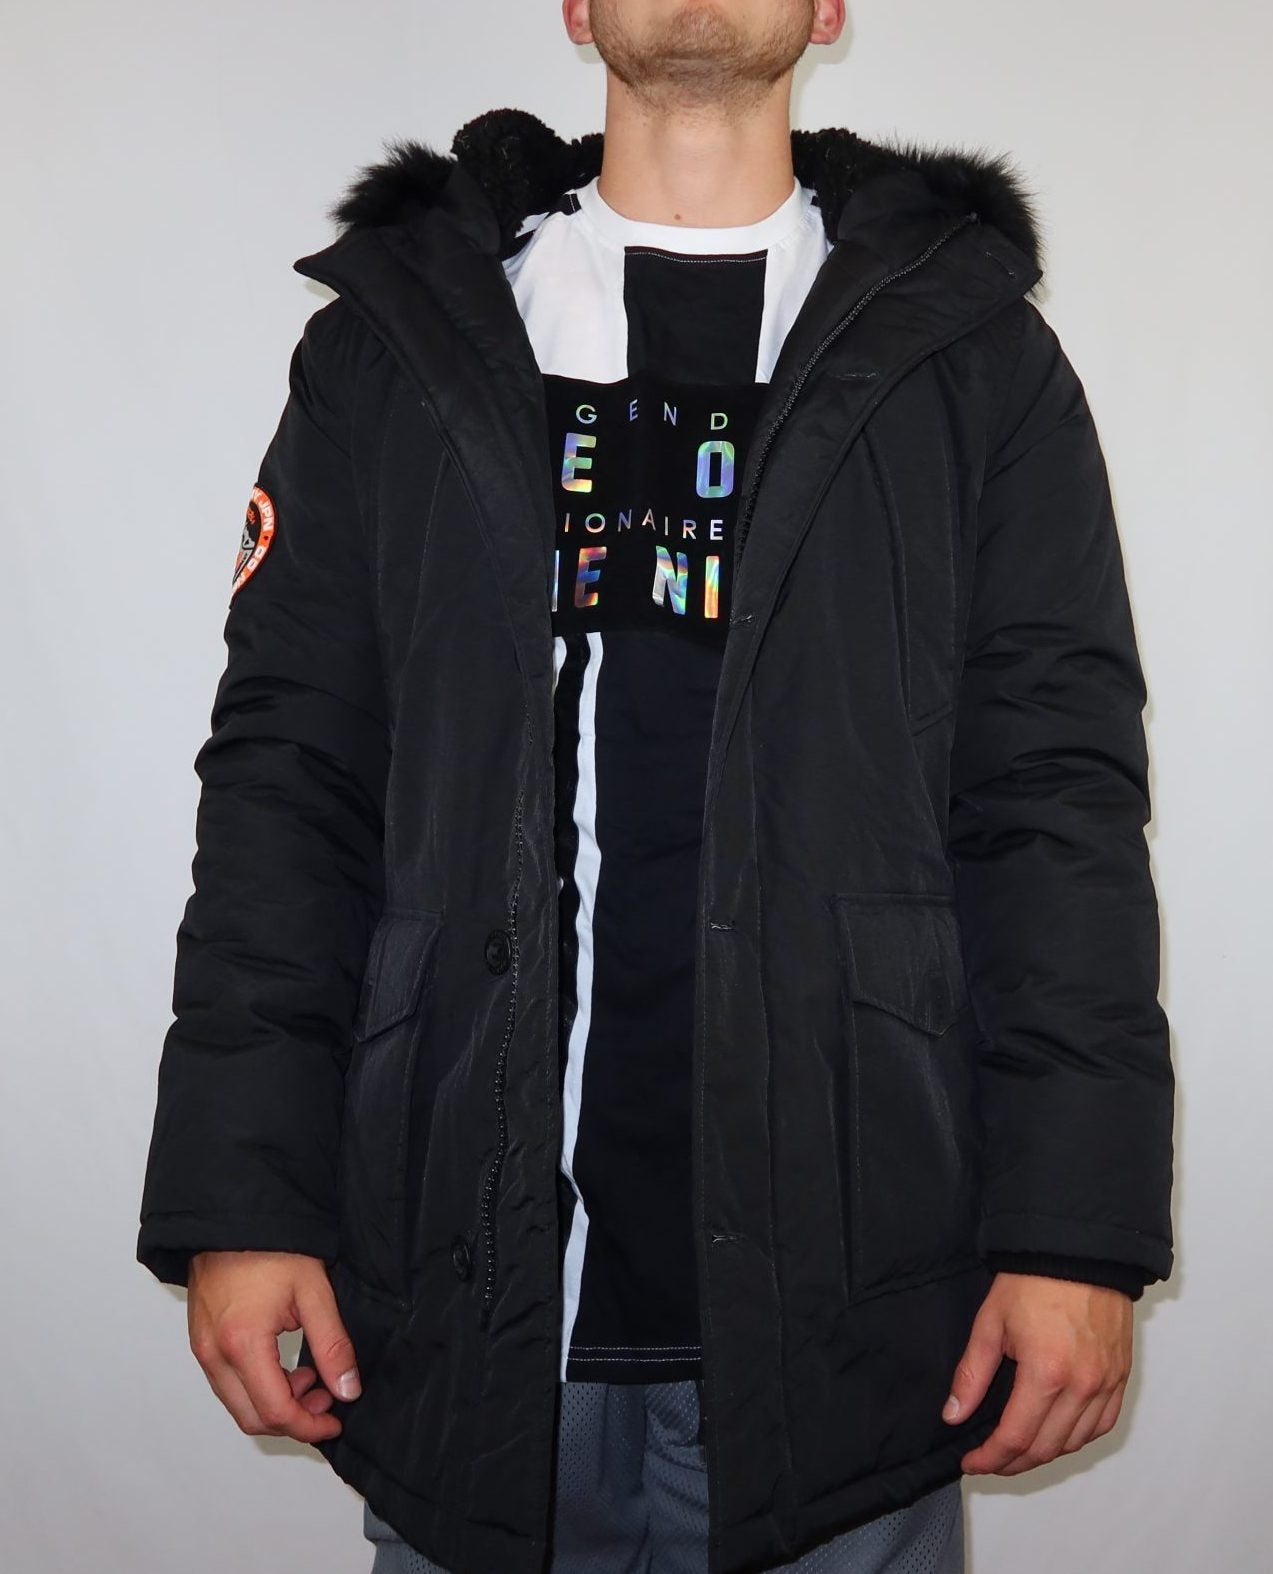 Super dry Everest edition jacket